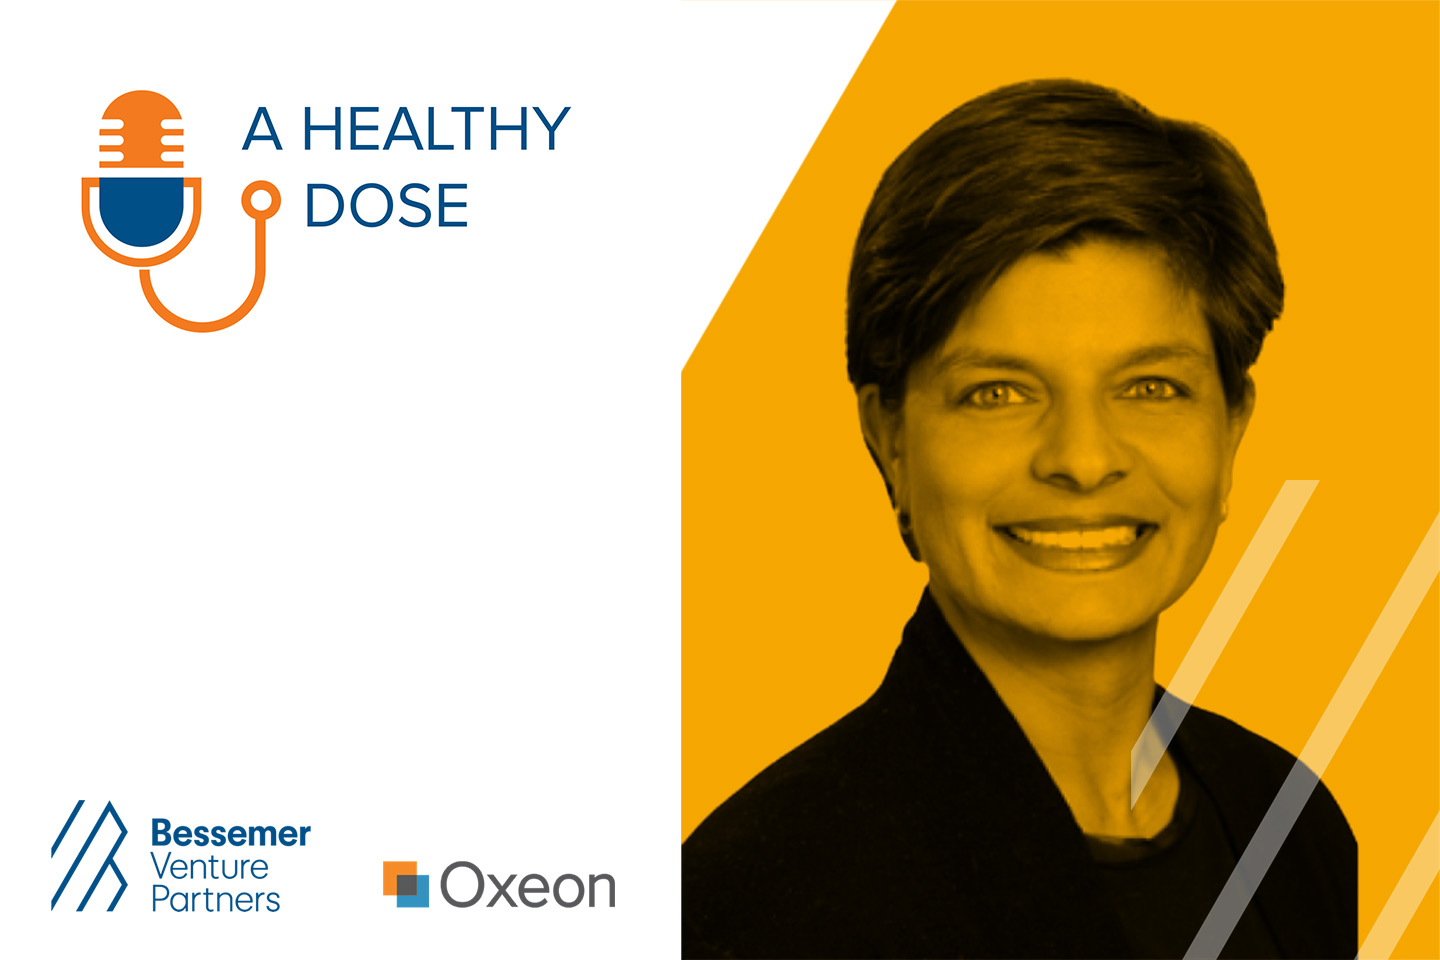 Illustrative Image of Logos showing A Healthy Dose, Bessemer Venture Partners Oxeon and Photo of Woman Speaker